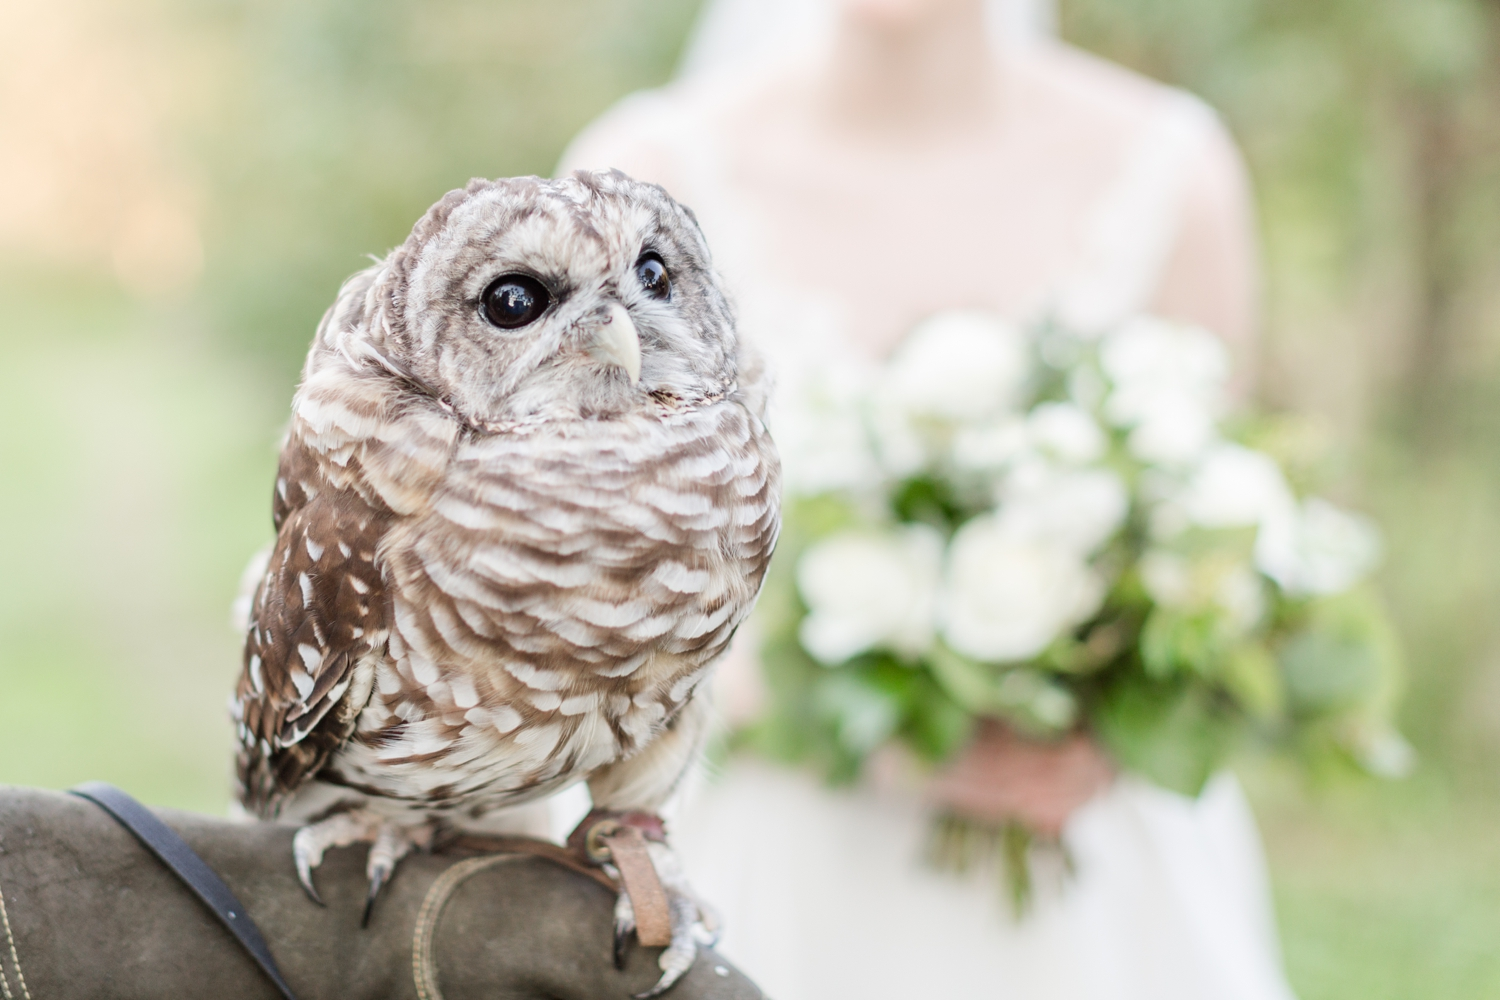 They had to get a few photos with the owl that was on site that day!